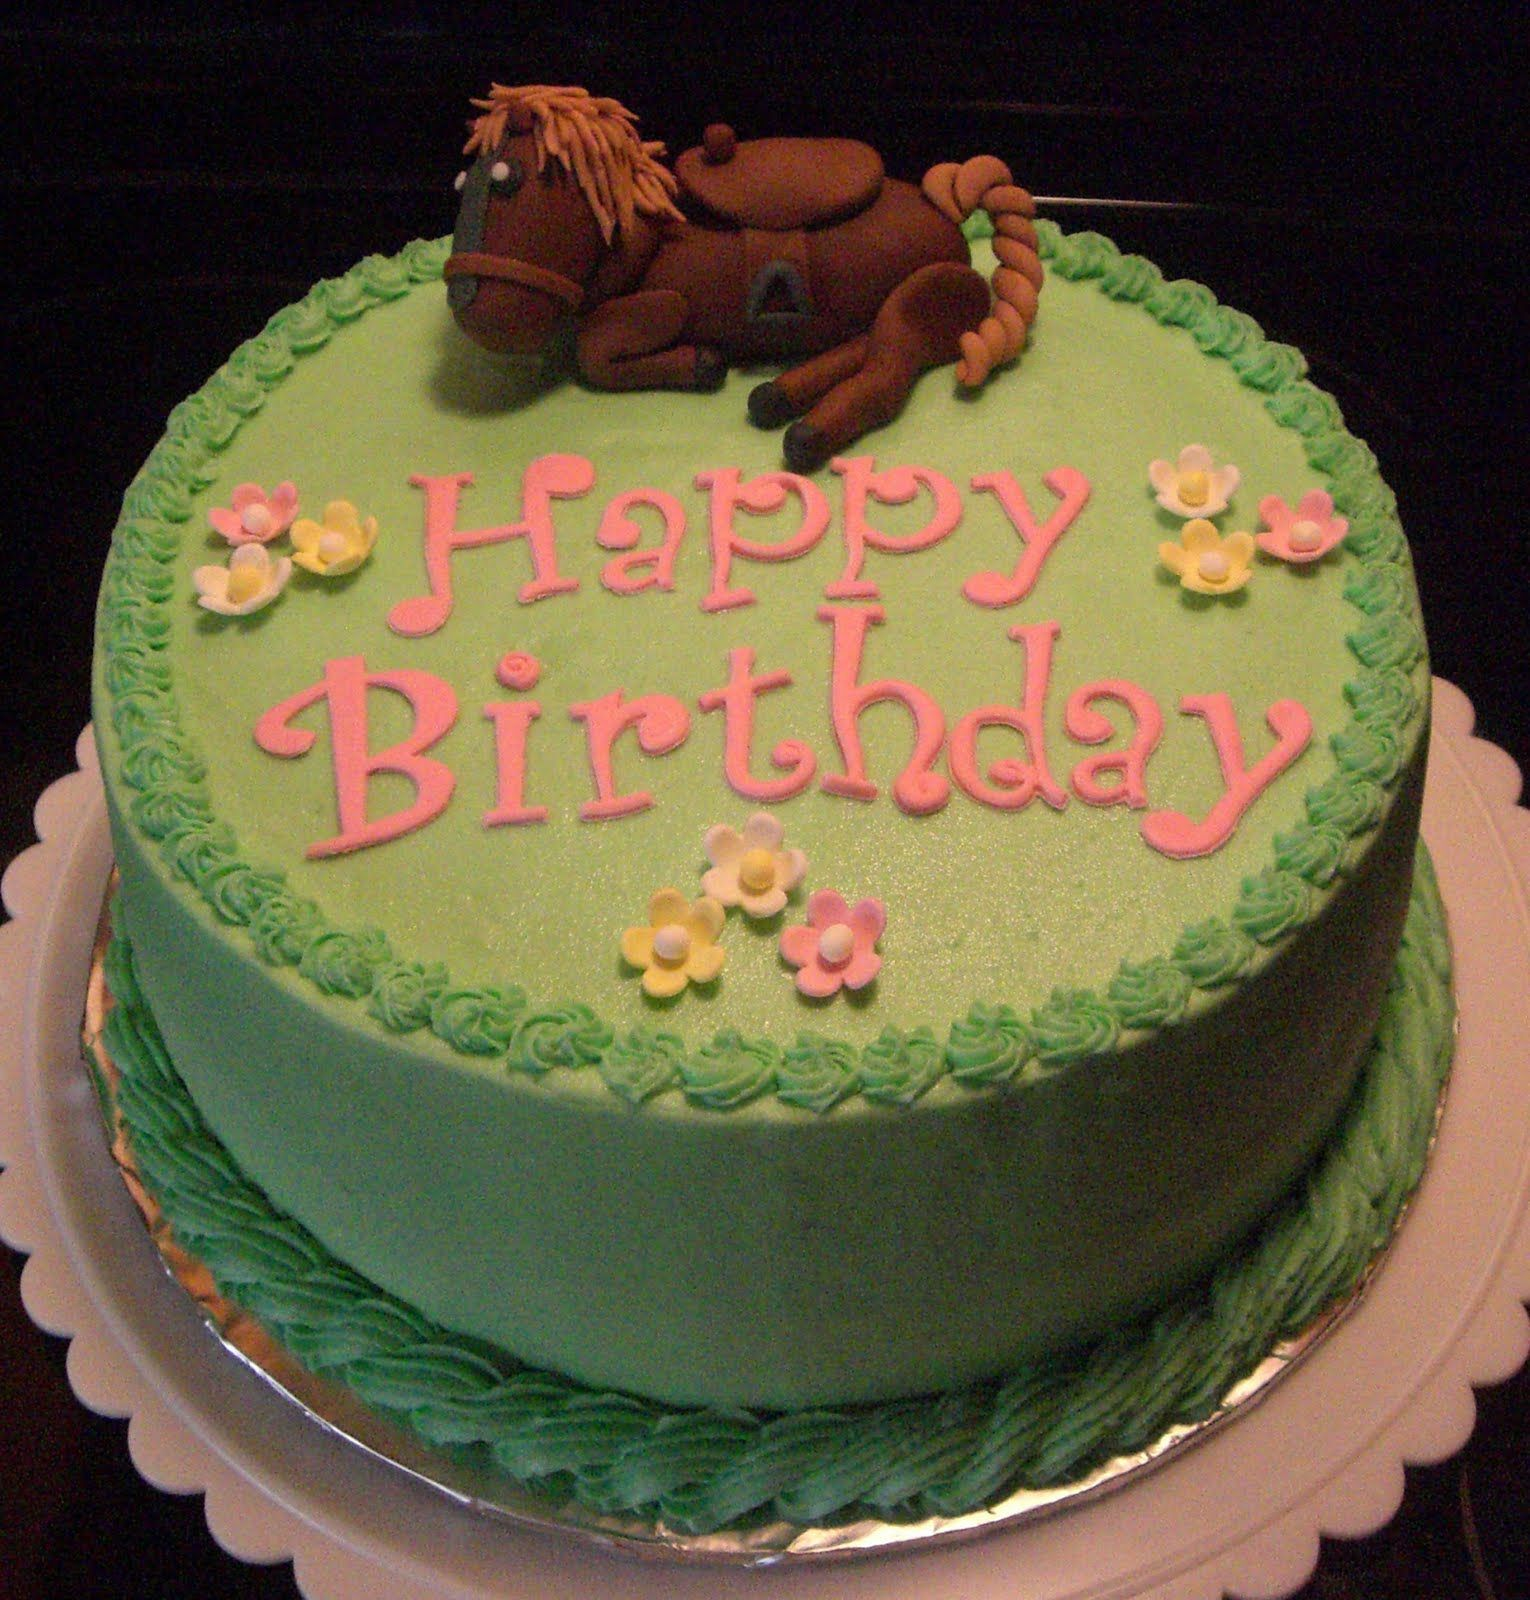 Horse Birthday Cakes Horse Lover S Birthday Cake This Is A 9 Inch